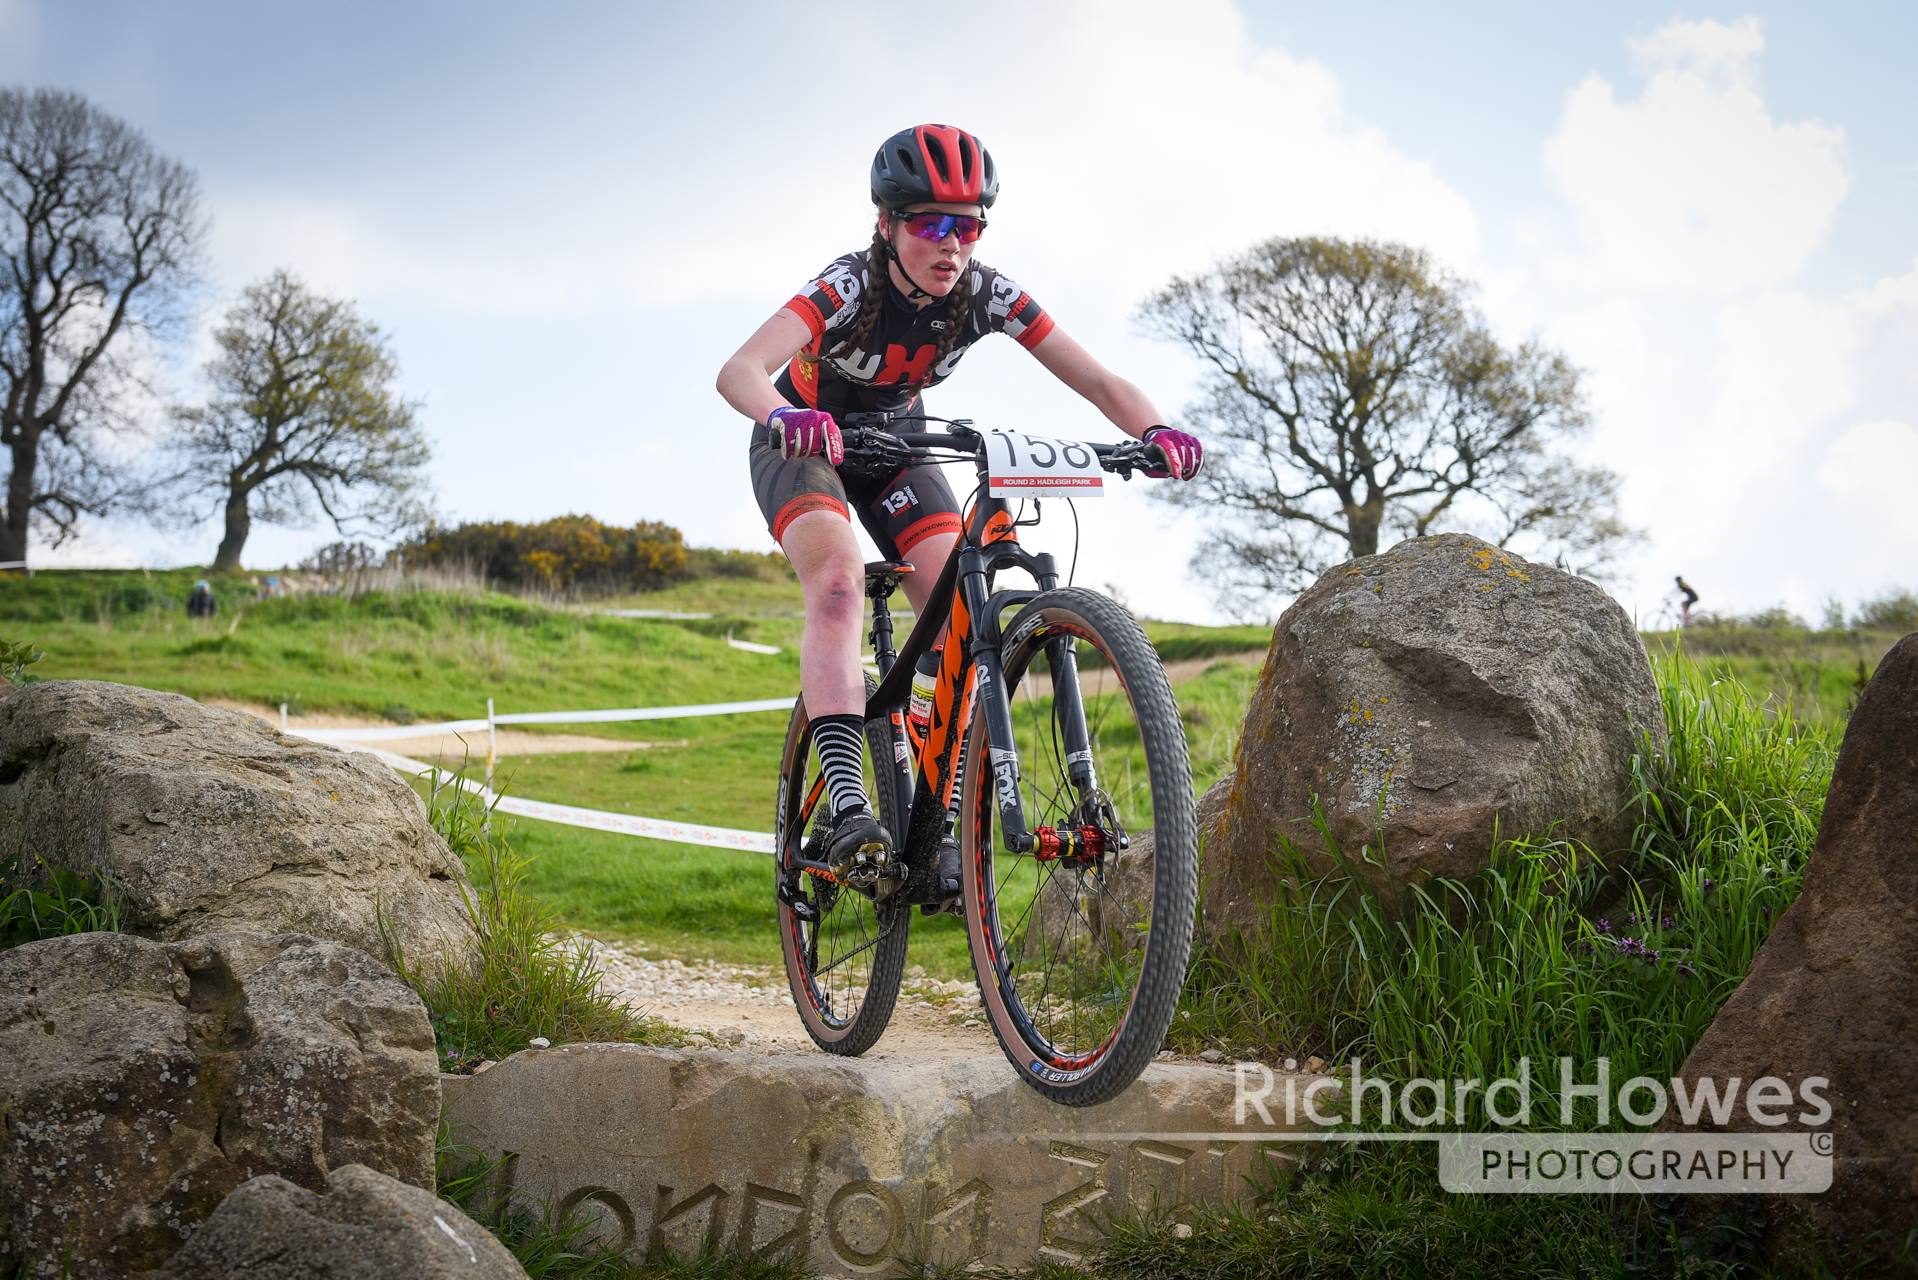 Abby fight her way to 8th at the National Series in Hadleigh after a being caught in a crash and being second to last on the opening lap.